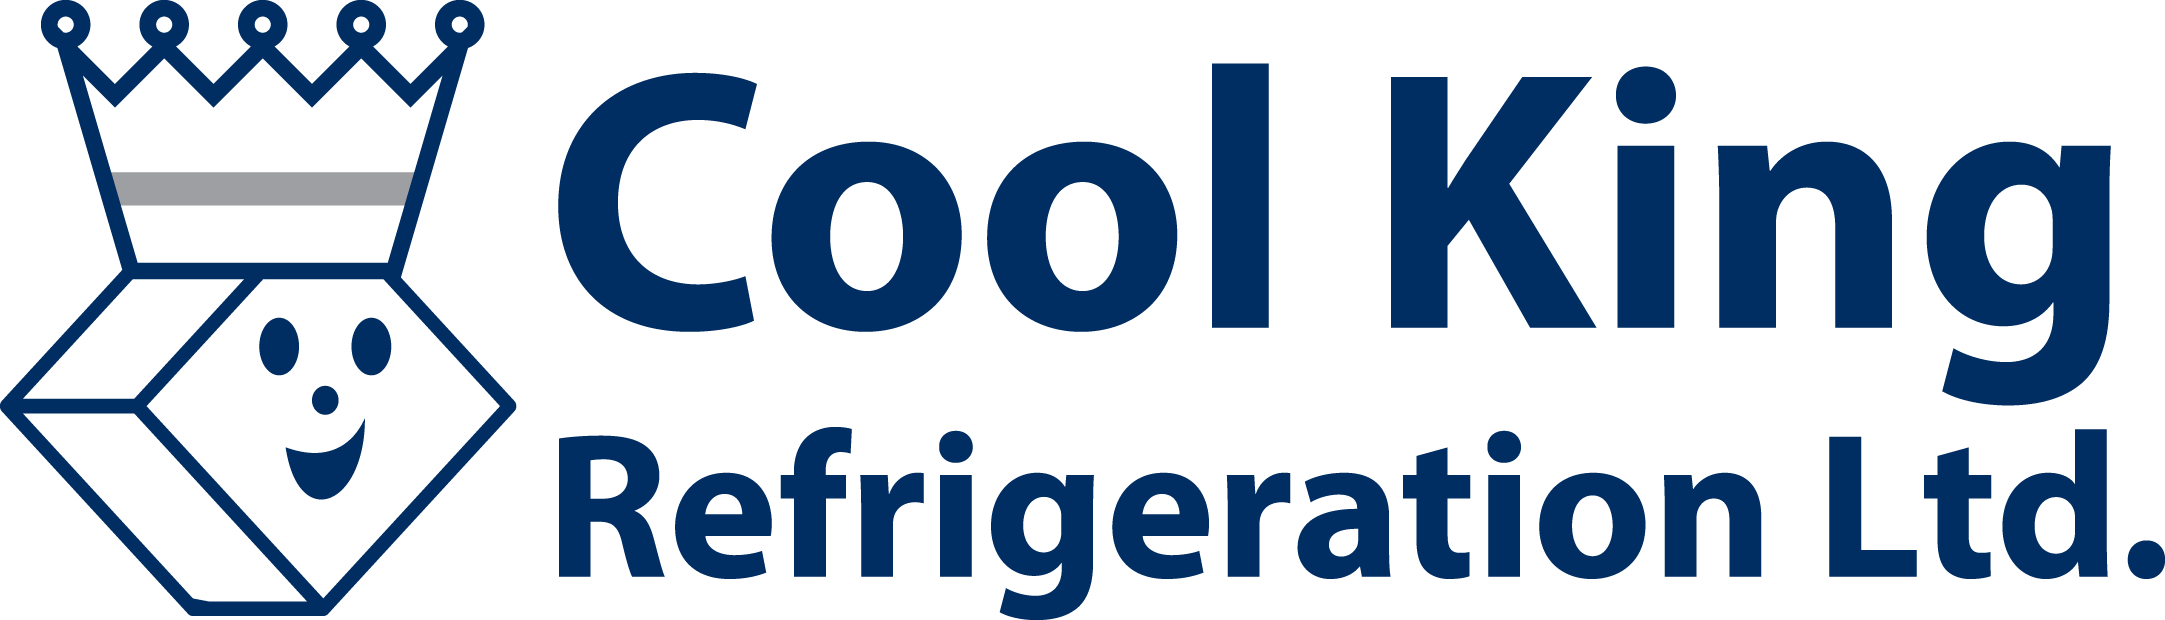 Cool King Refrigeration Ltd.